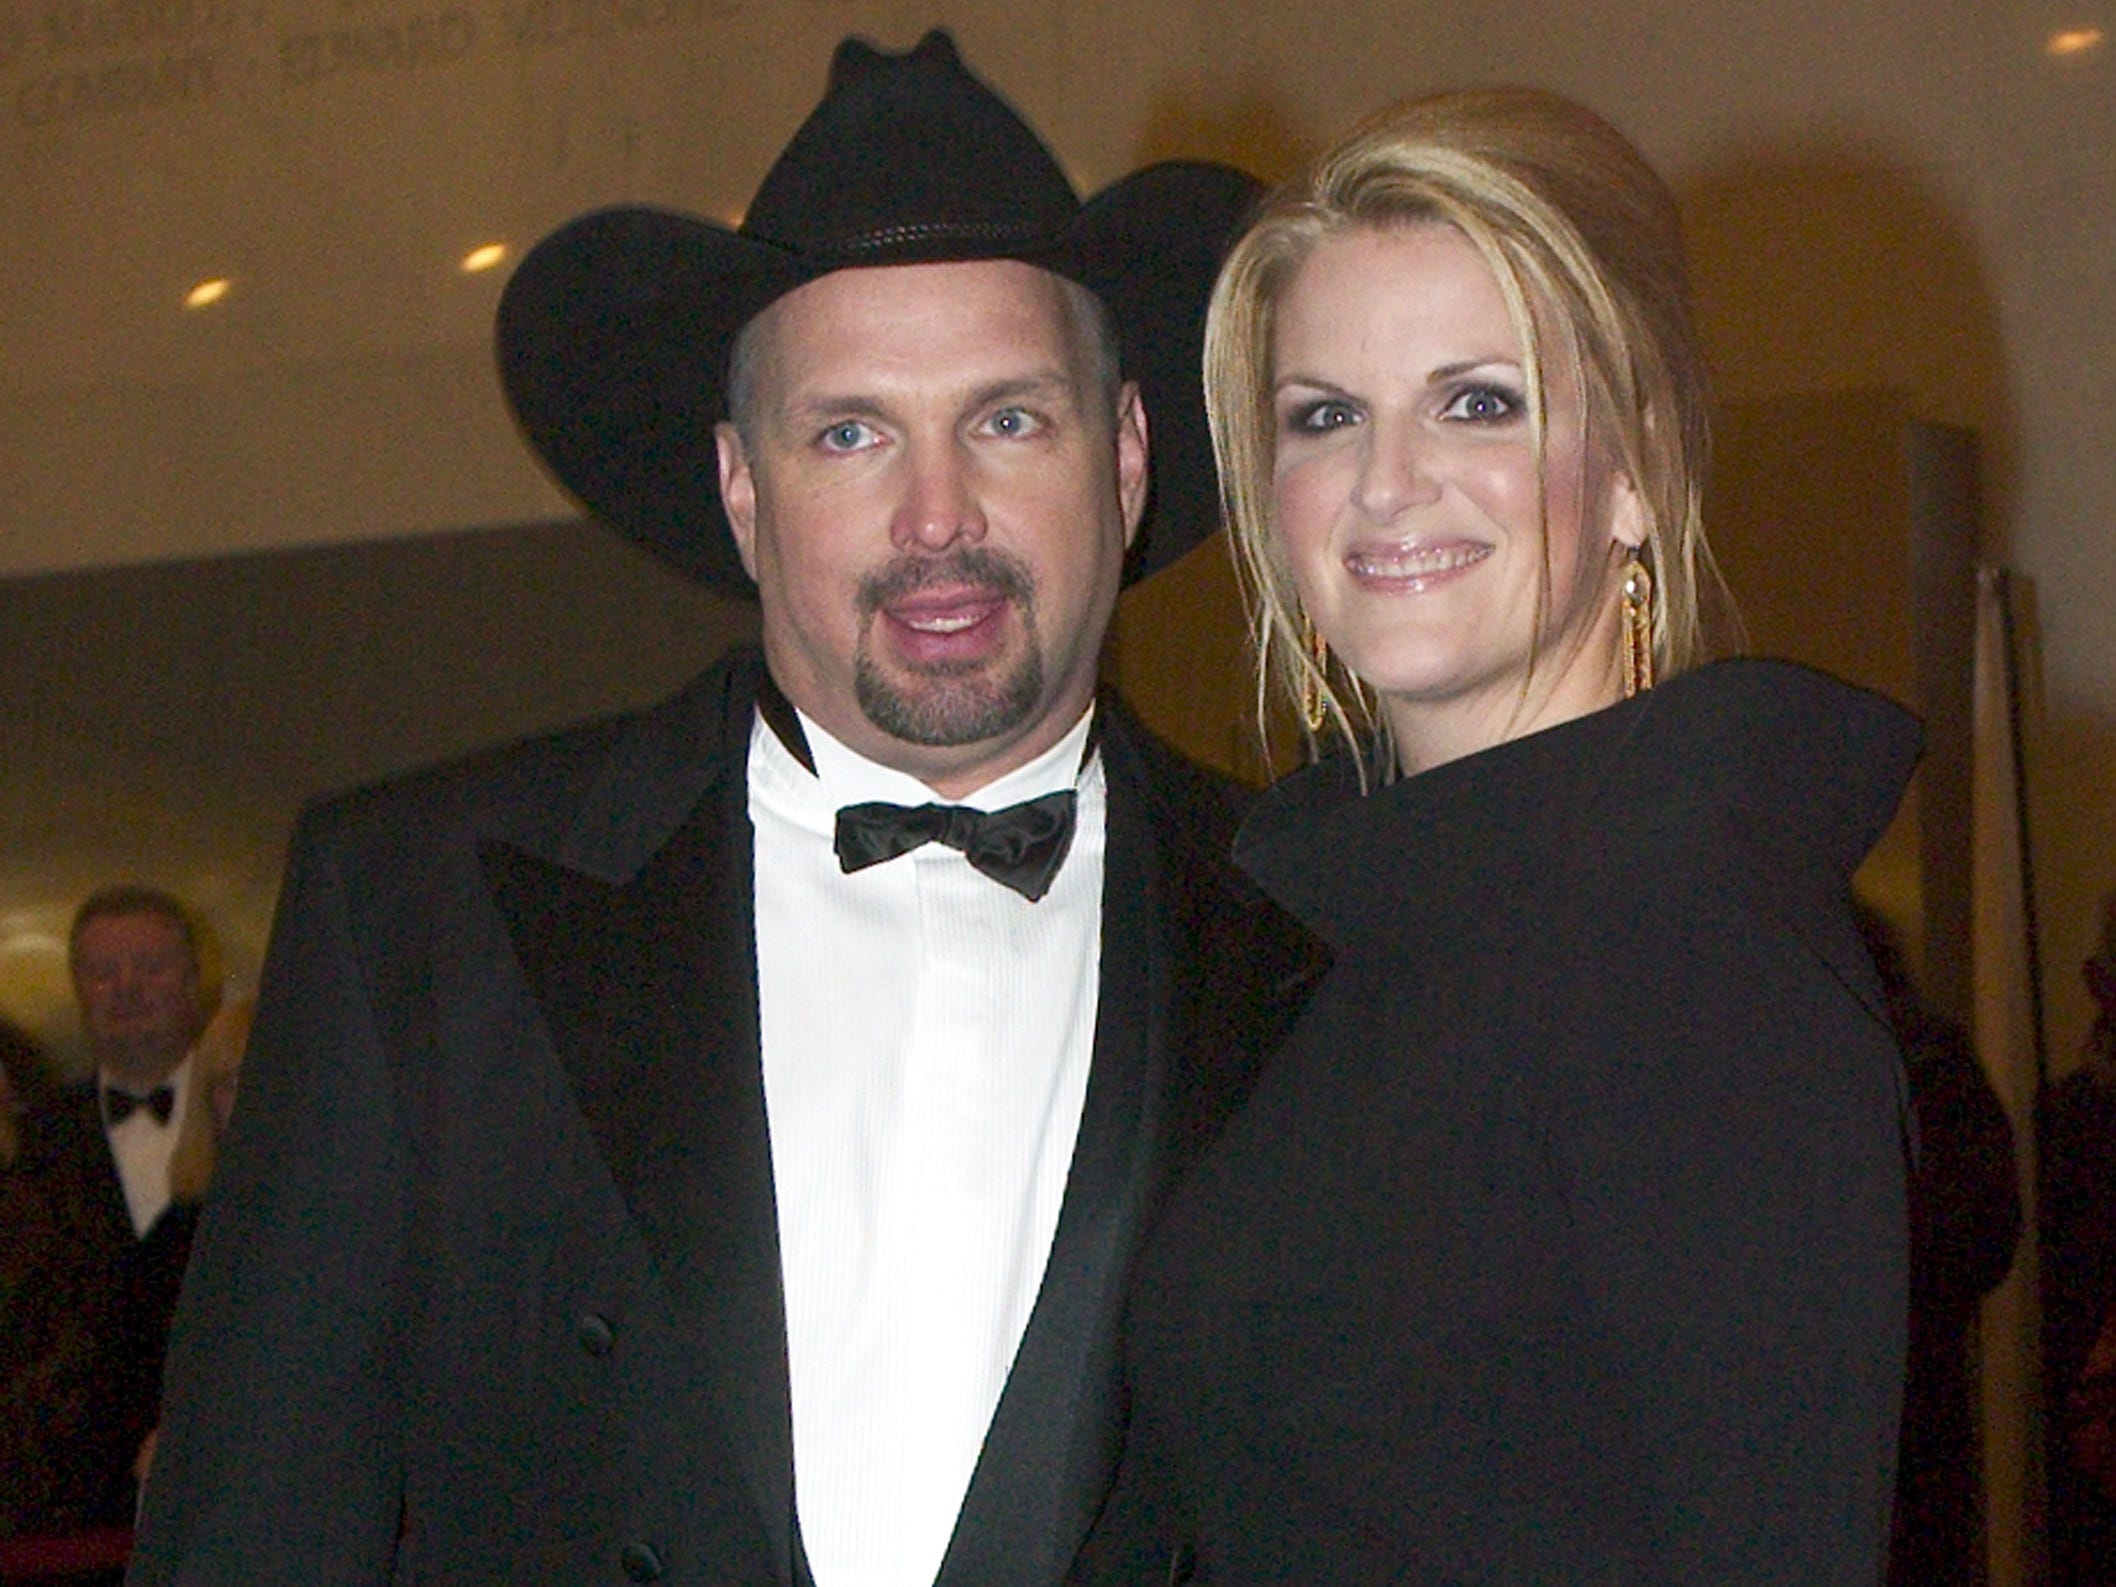 Garth Brooks and Trisha Yearwood arrive at the Kennedy Center Honors December 7, 2003 in Washington, DC.